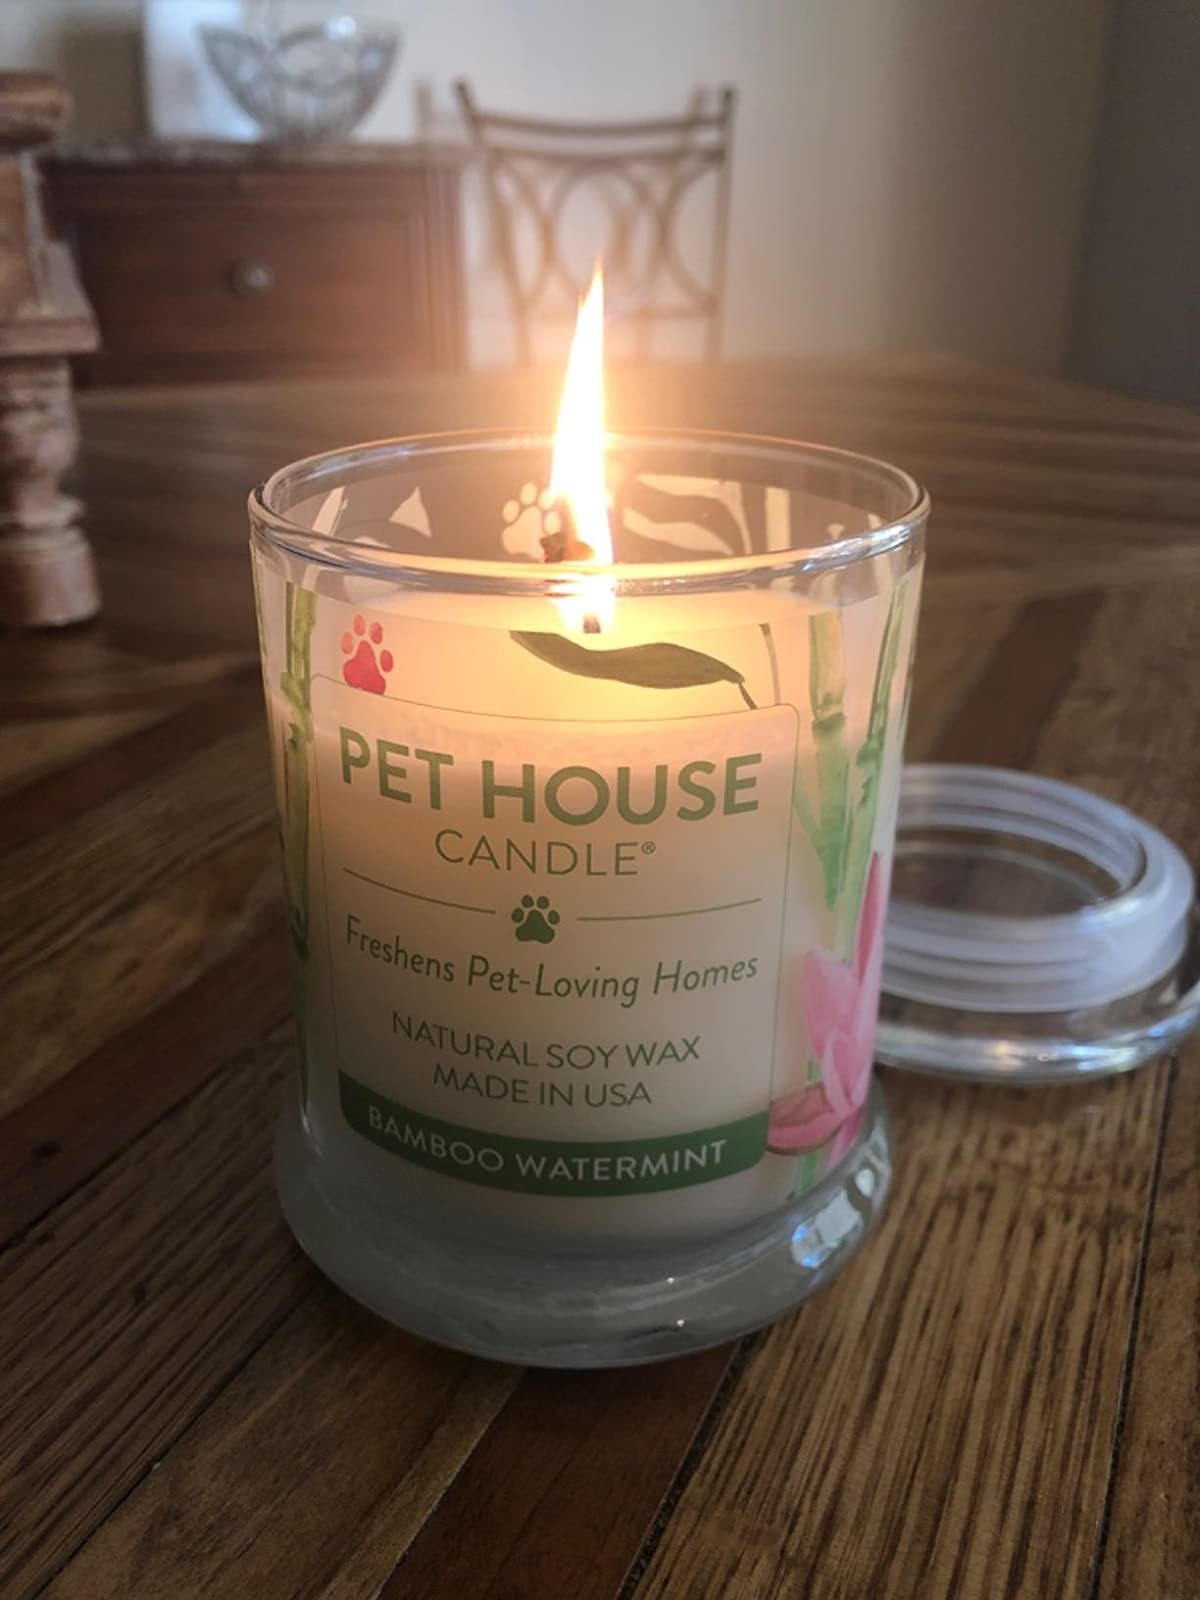 The candle, which comes in a glass jar with a removable top